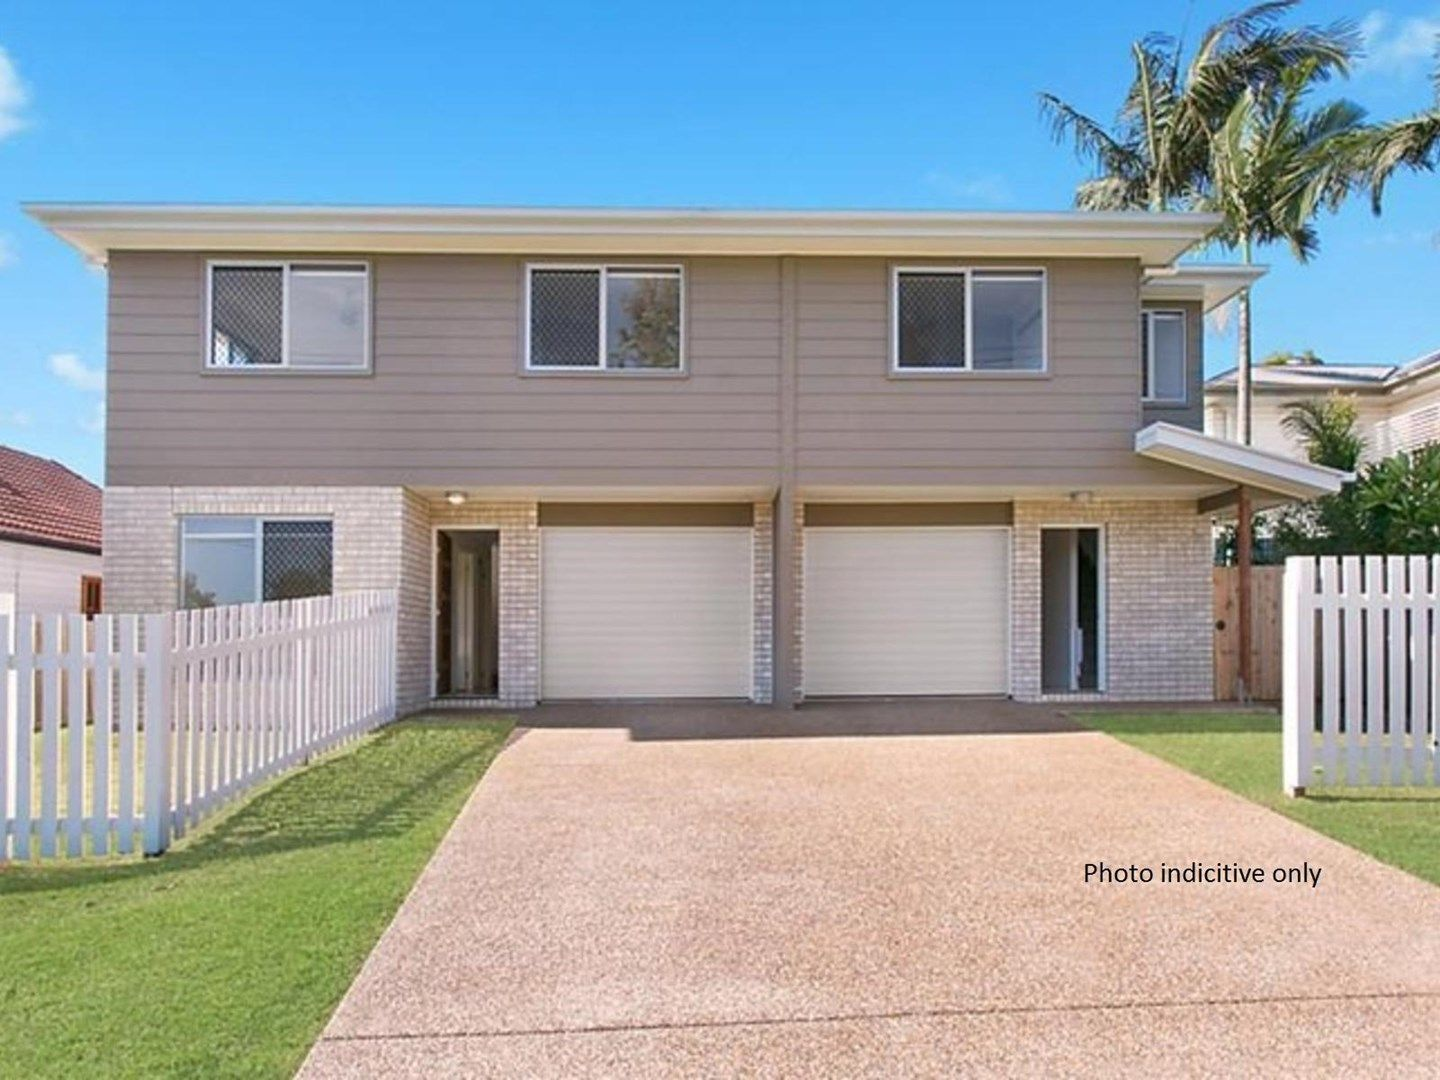 Address Available Upon Request, Wynnum QLD 4178, Image 0